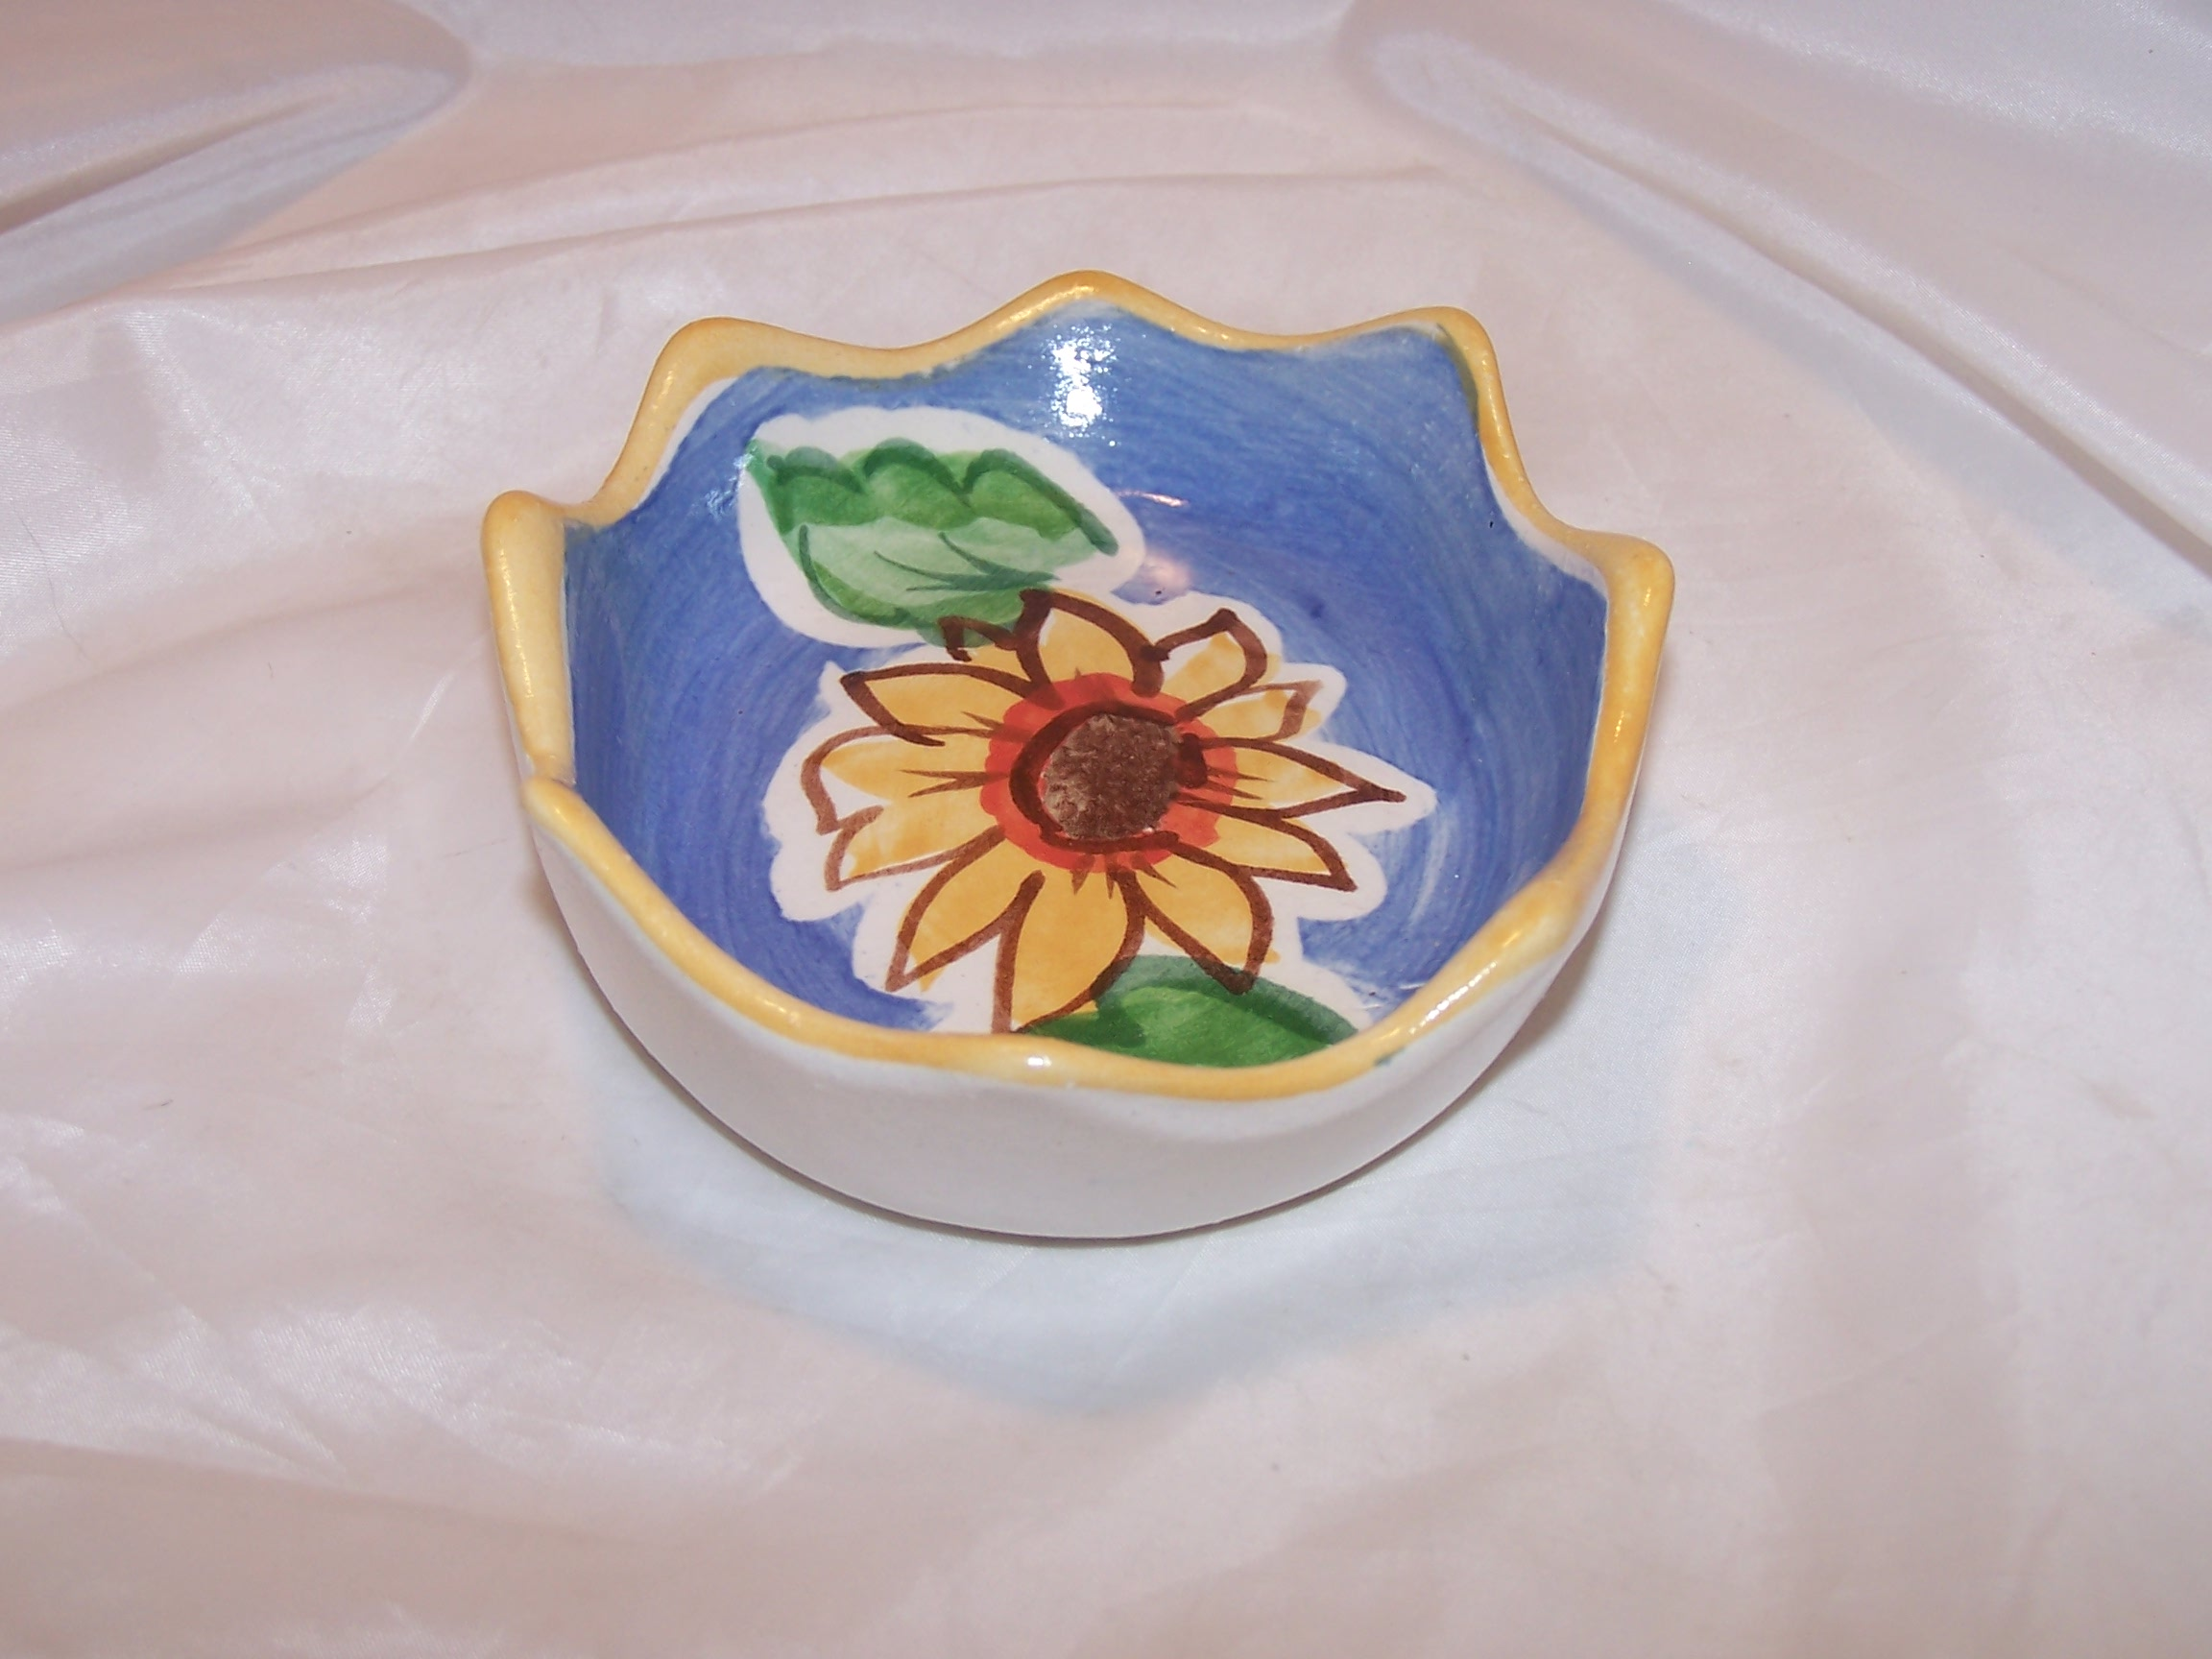 Image 2 of Fioriware Soap Dish Sunflower Handcrafted Ohio